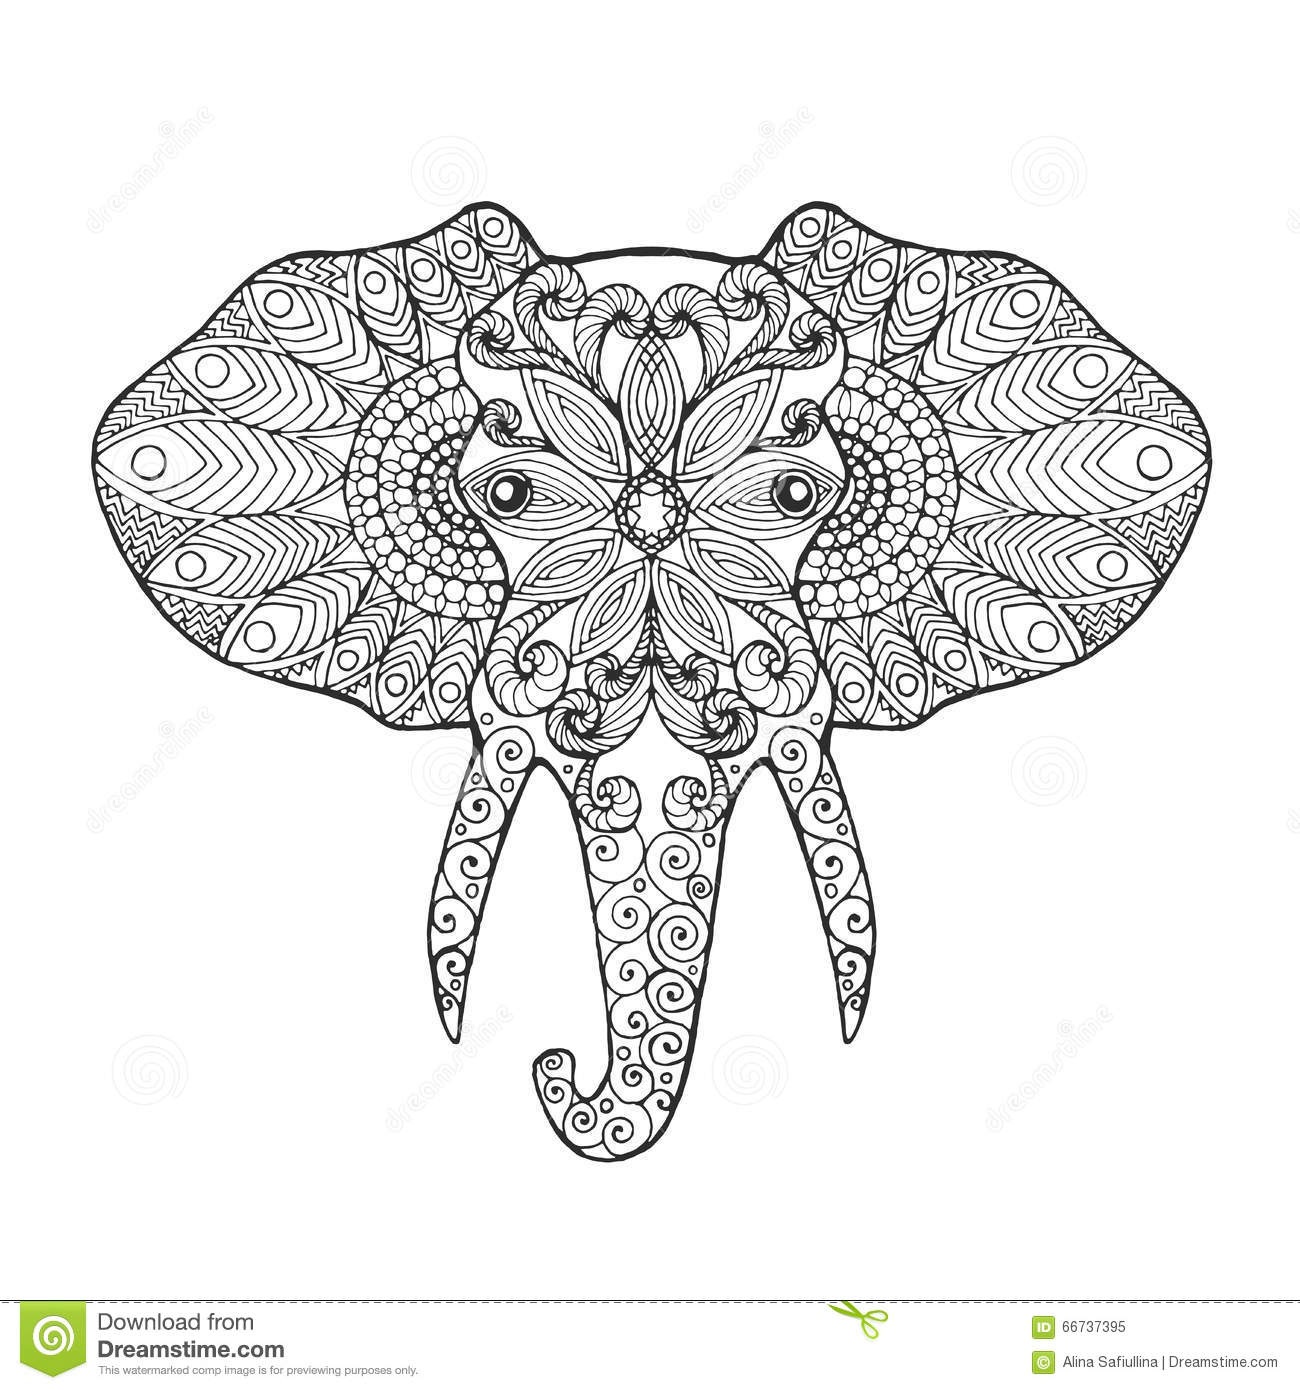 Elephant head stock vector. Illustration of coloring - 66737395